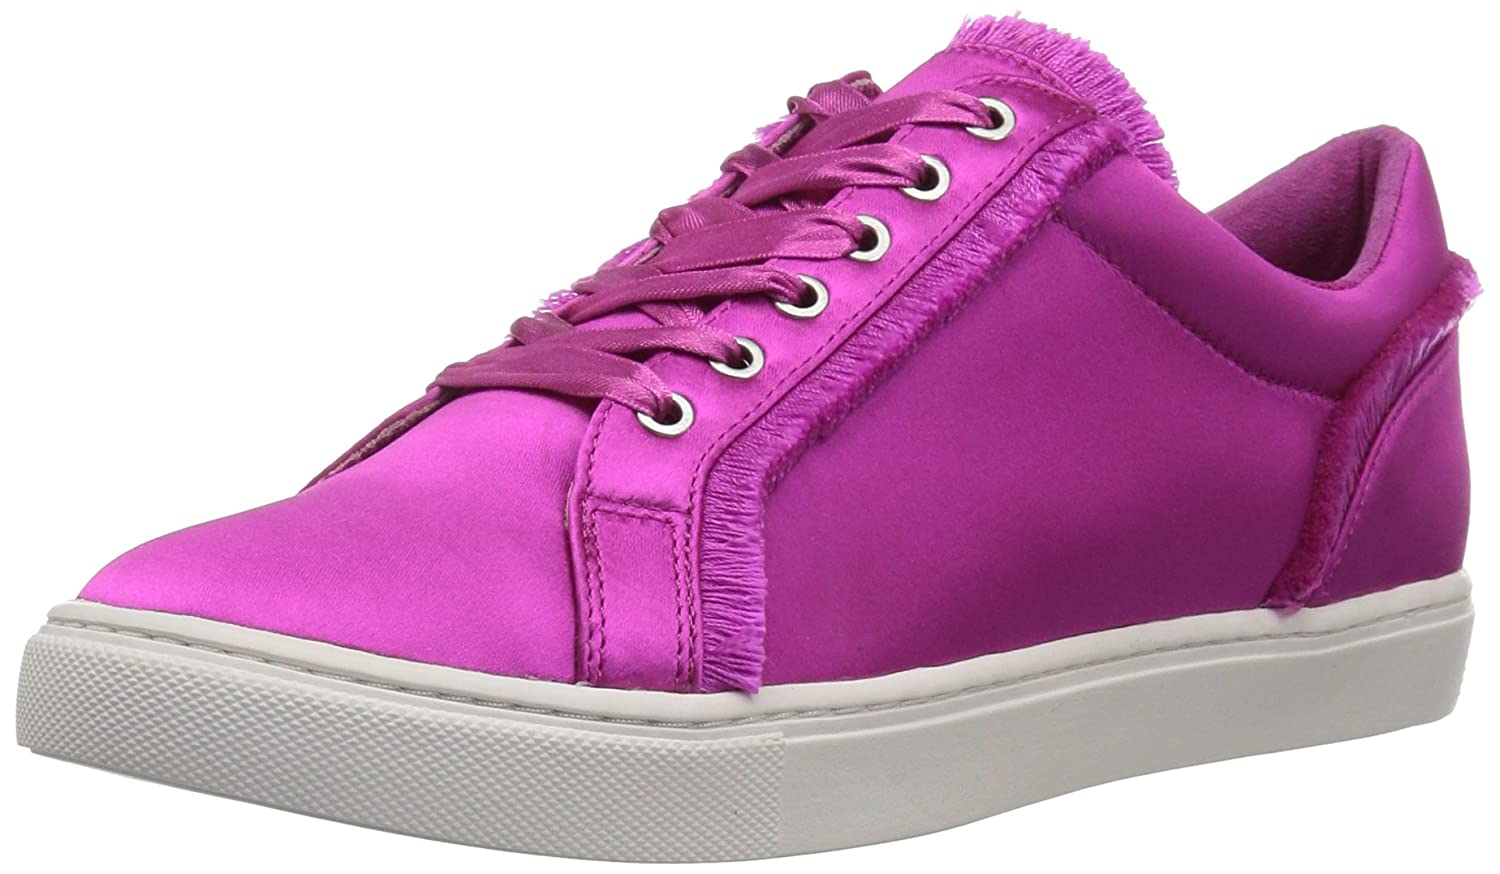 The Fix Womens Tinsley Frayed Silk Lace-up Sneaker B074K4CSLD 6.5 B(M) US|Bright Pink Satin